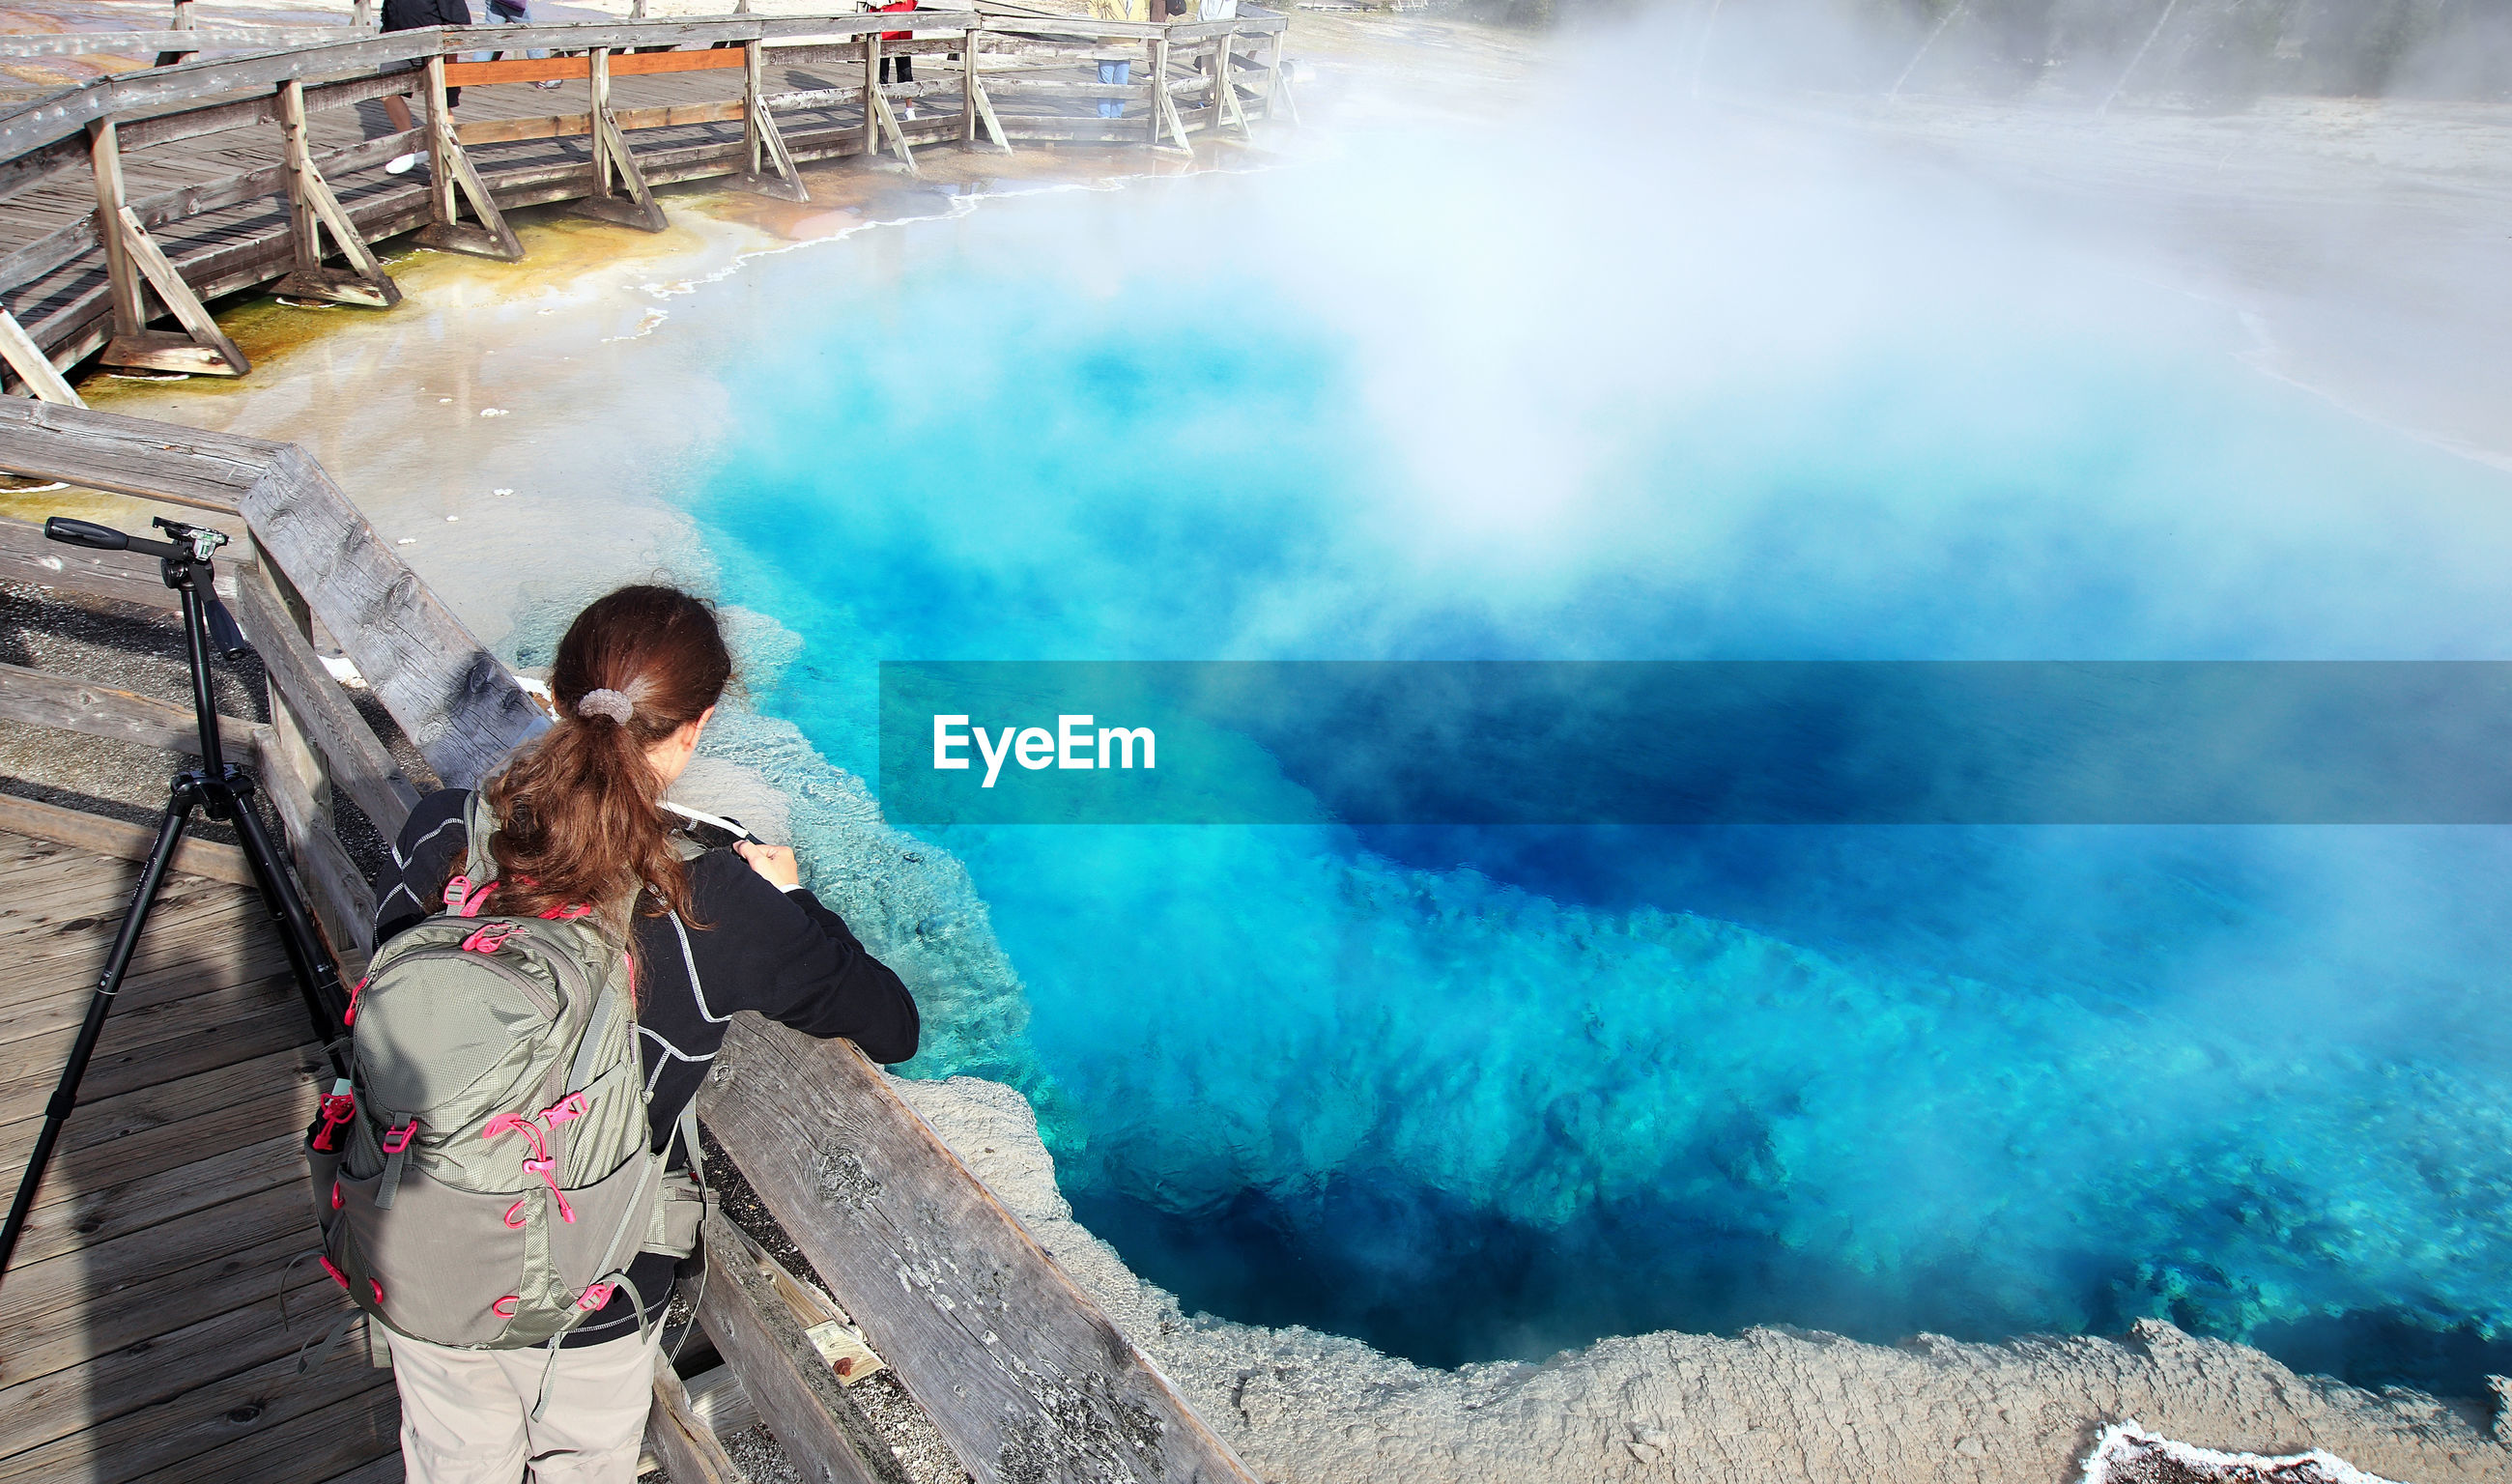 Rear View Of Woman Standing By Hot Spring